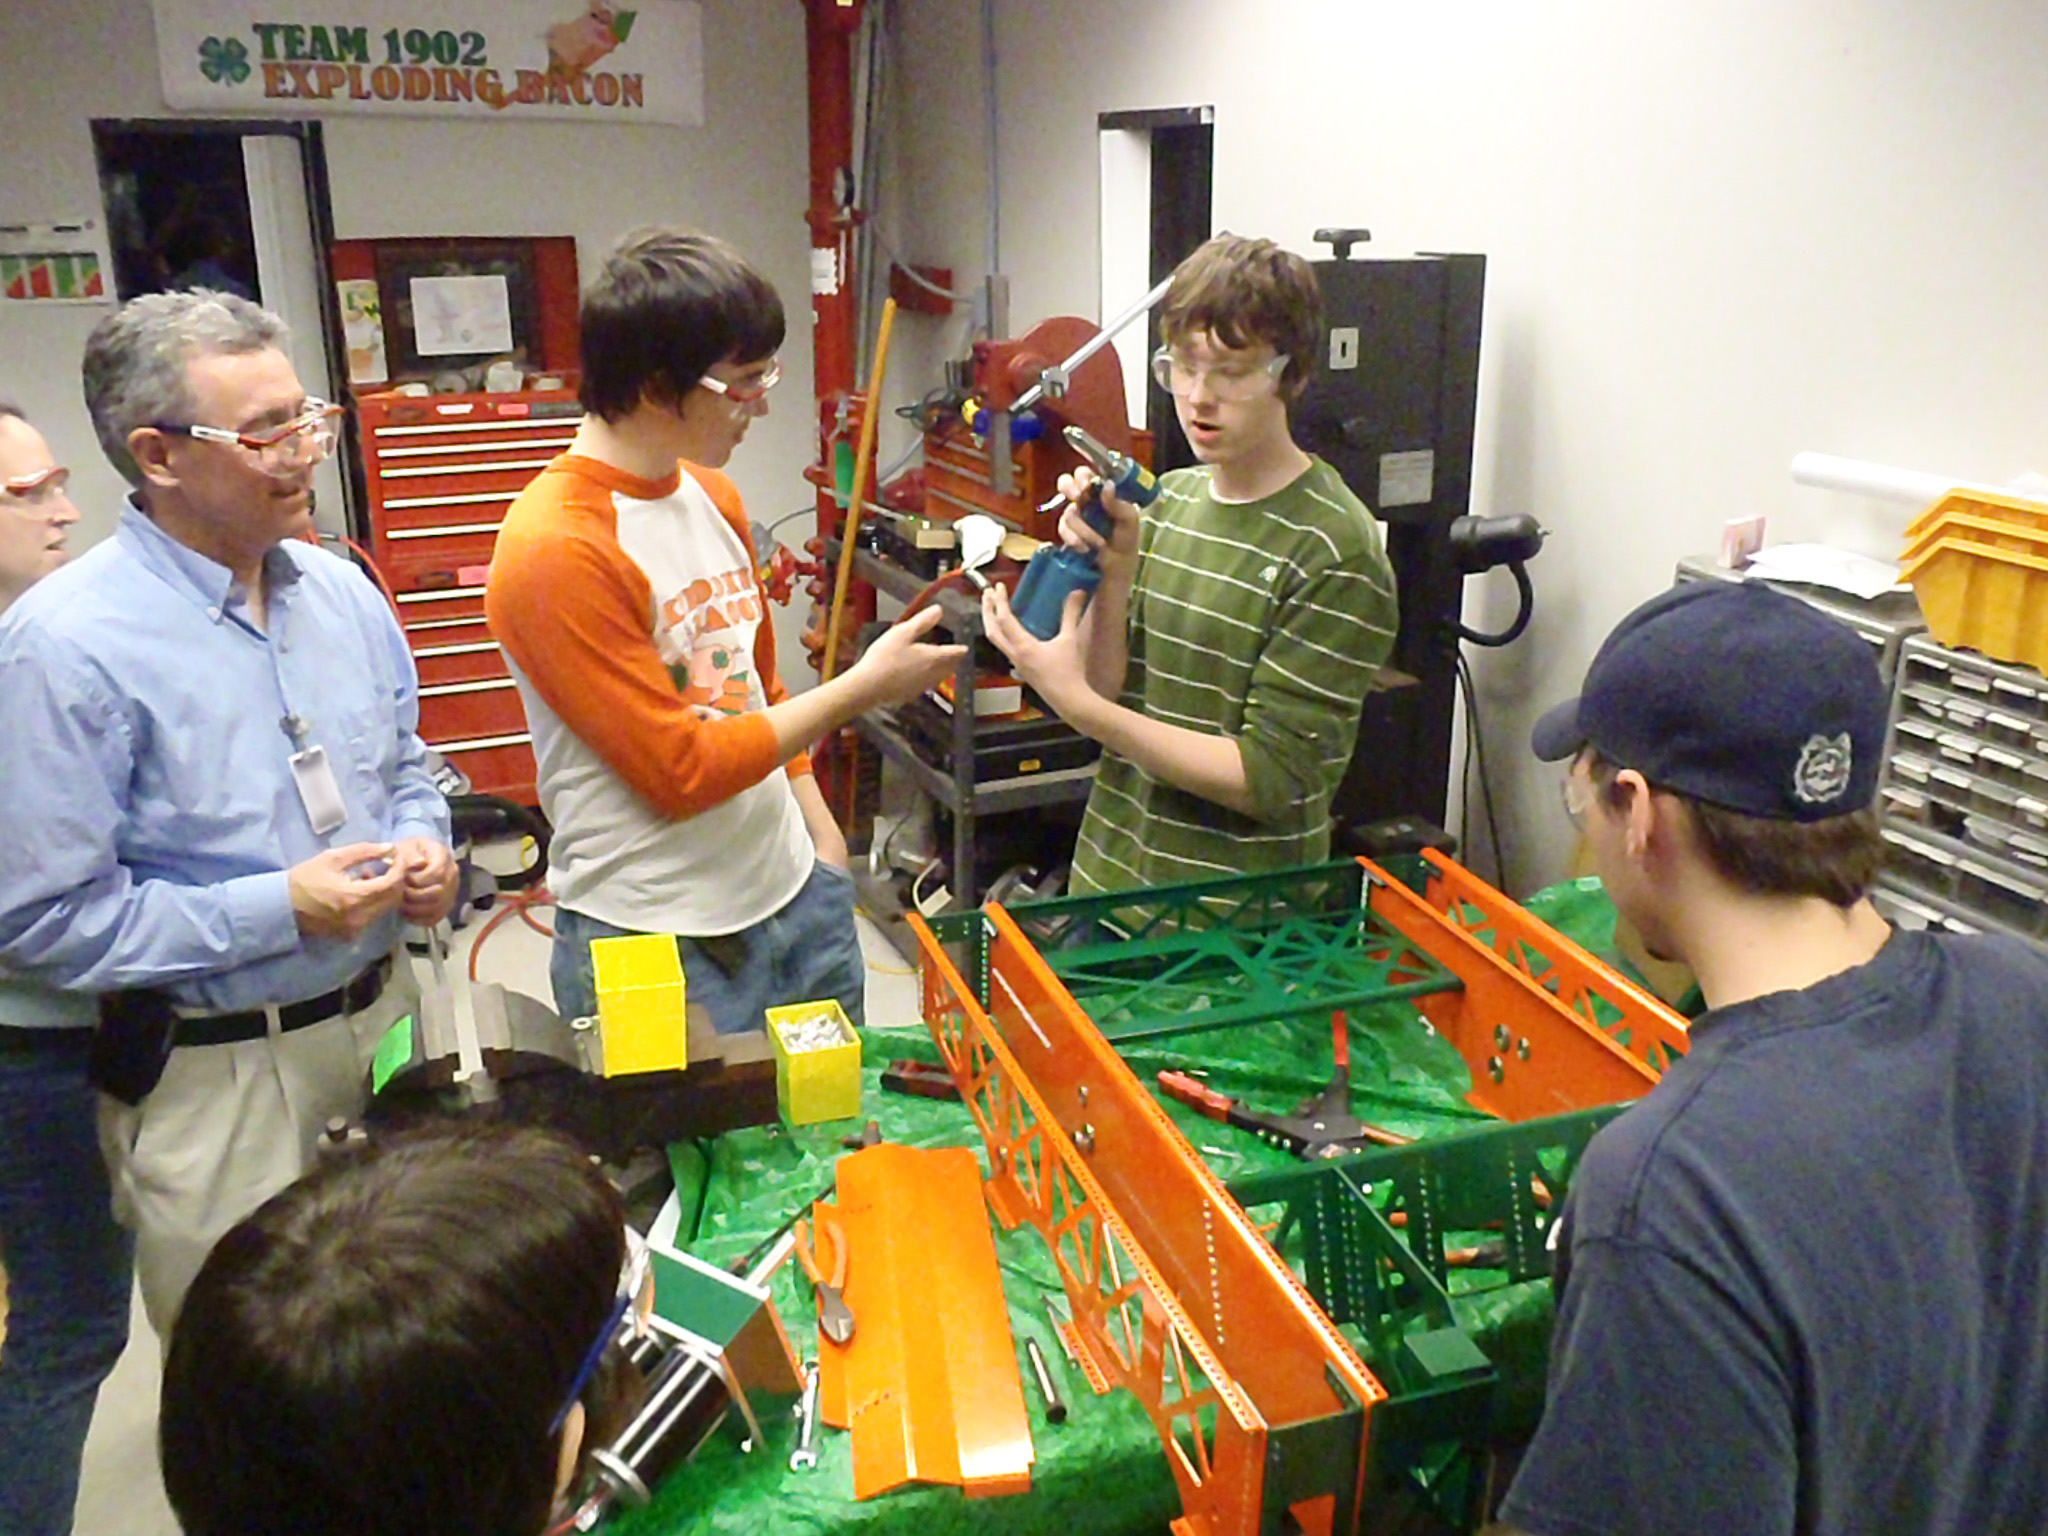 Everyone gets to help rivet the robot.  Even the Mentors and parents get to put a few rivets on.